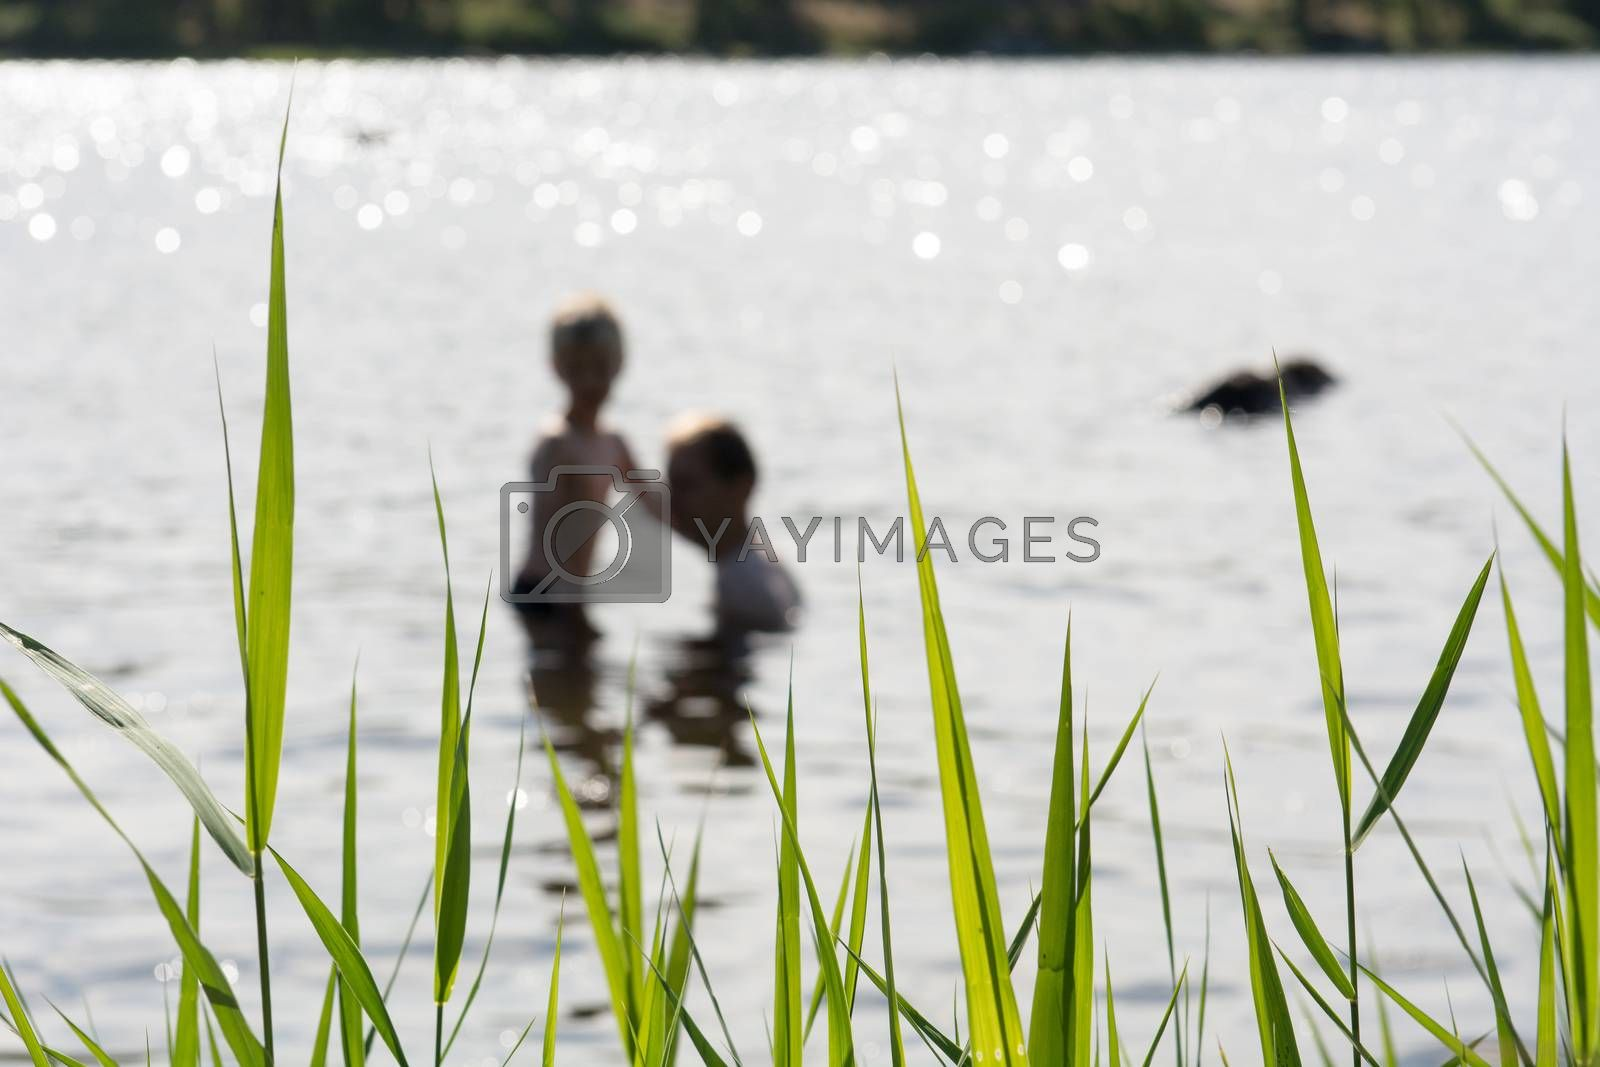 Father and son in a lake with plants in the foreground in Sweden